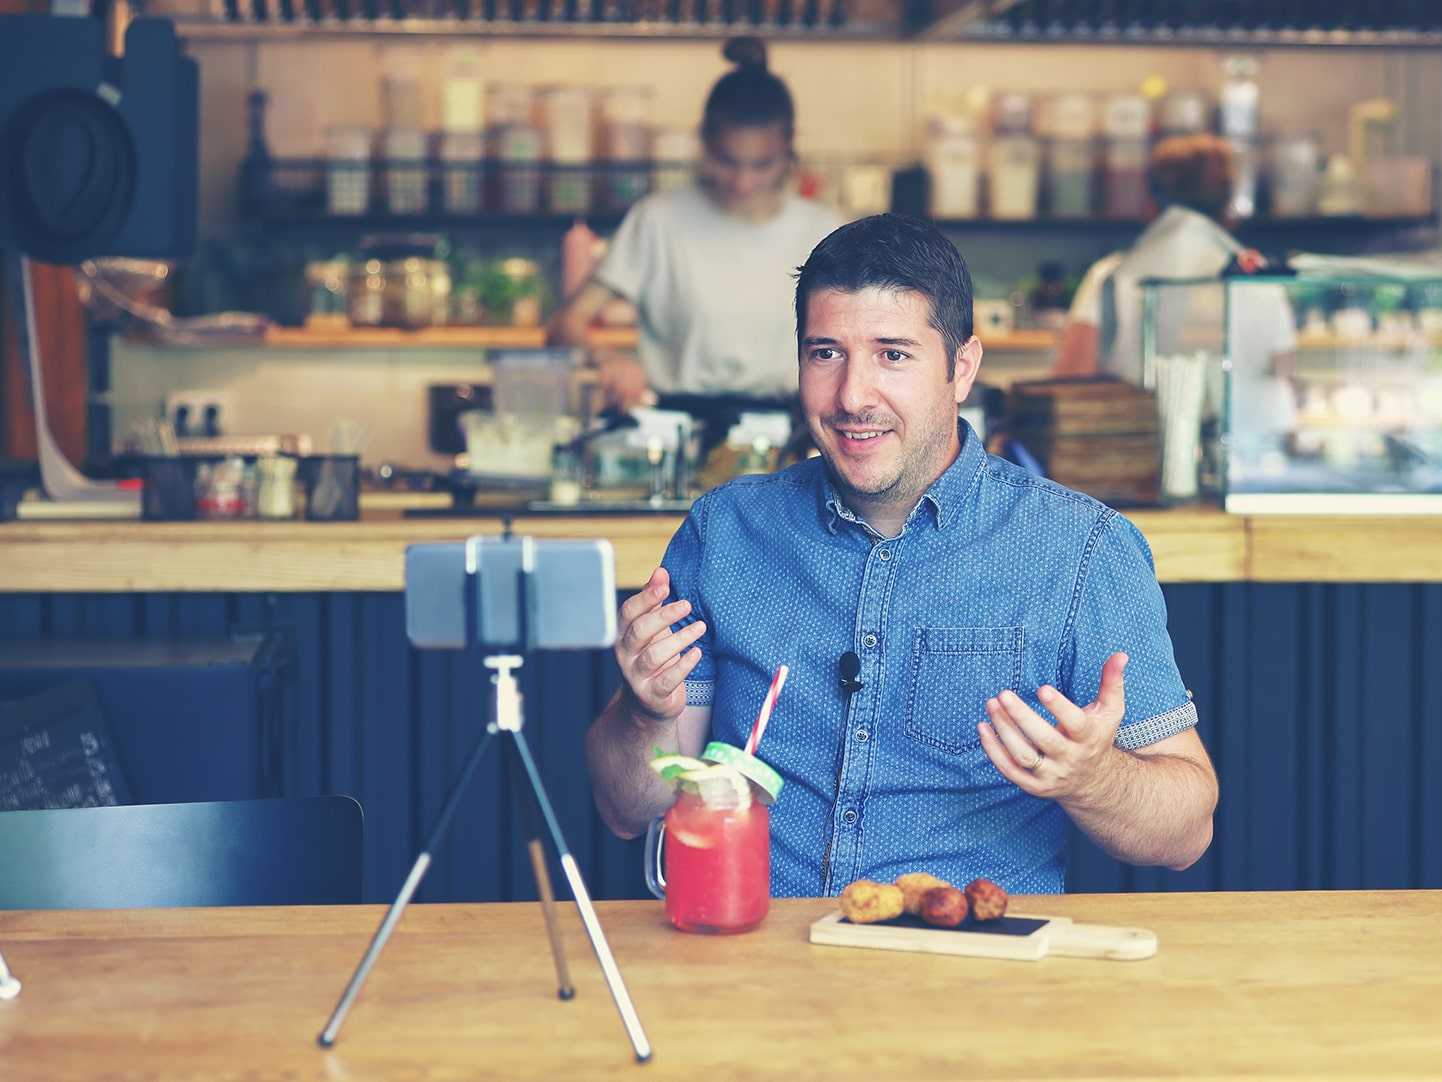 Caucasian man video blogging his reviews of a restaurants newest drink and menu item